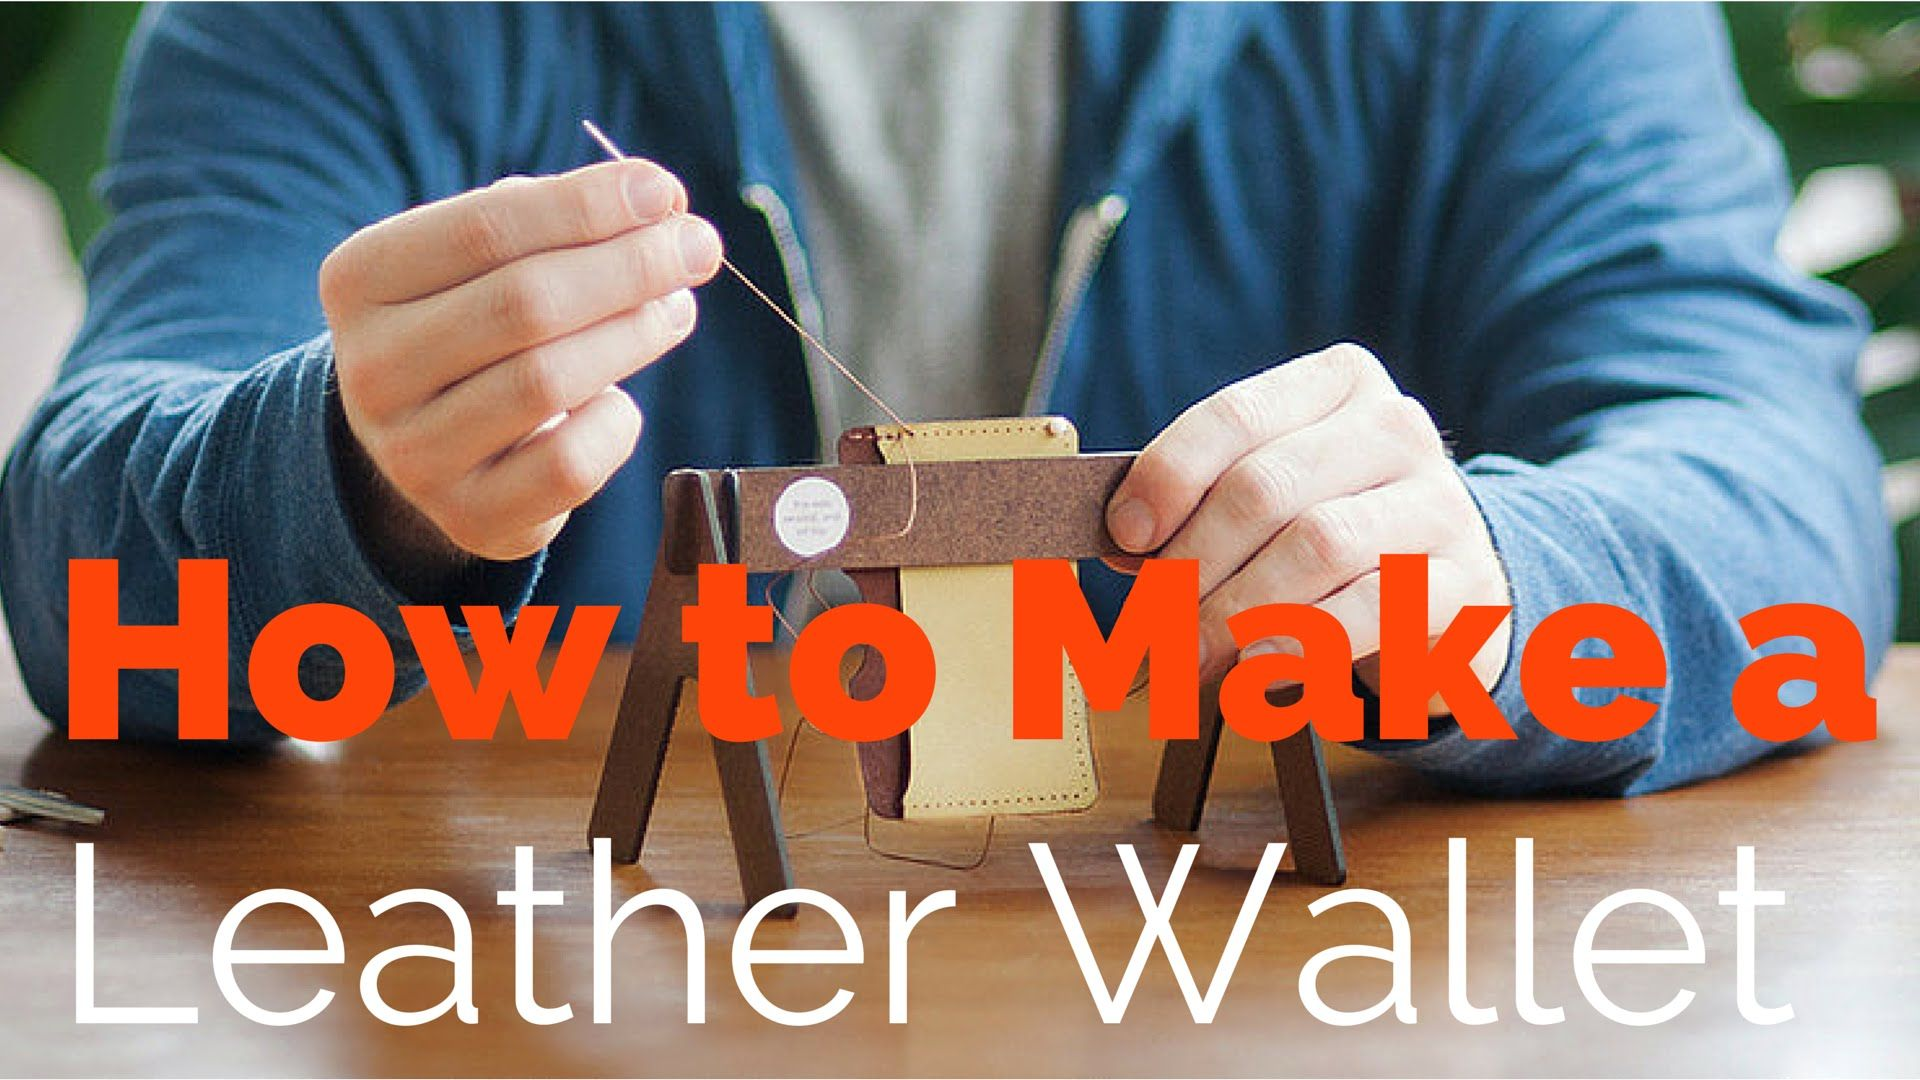 DIY: How to Make a Leather Wallet